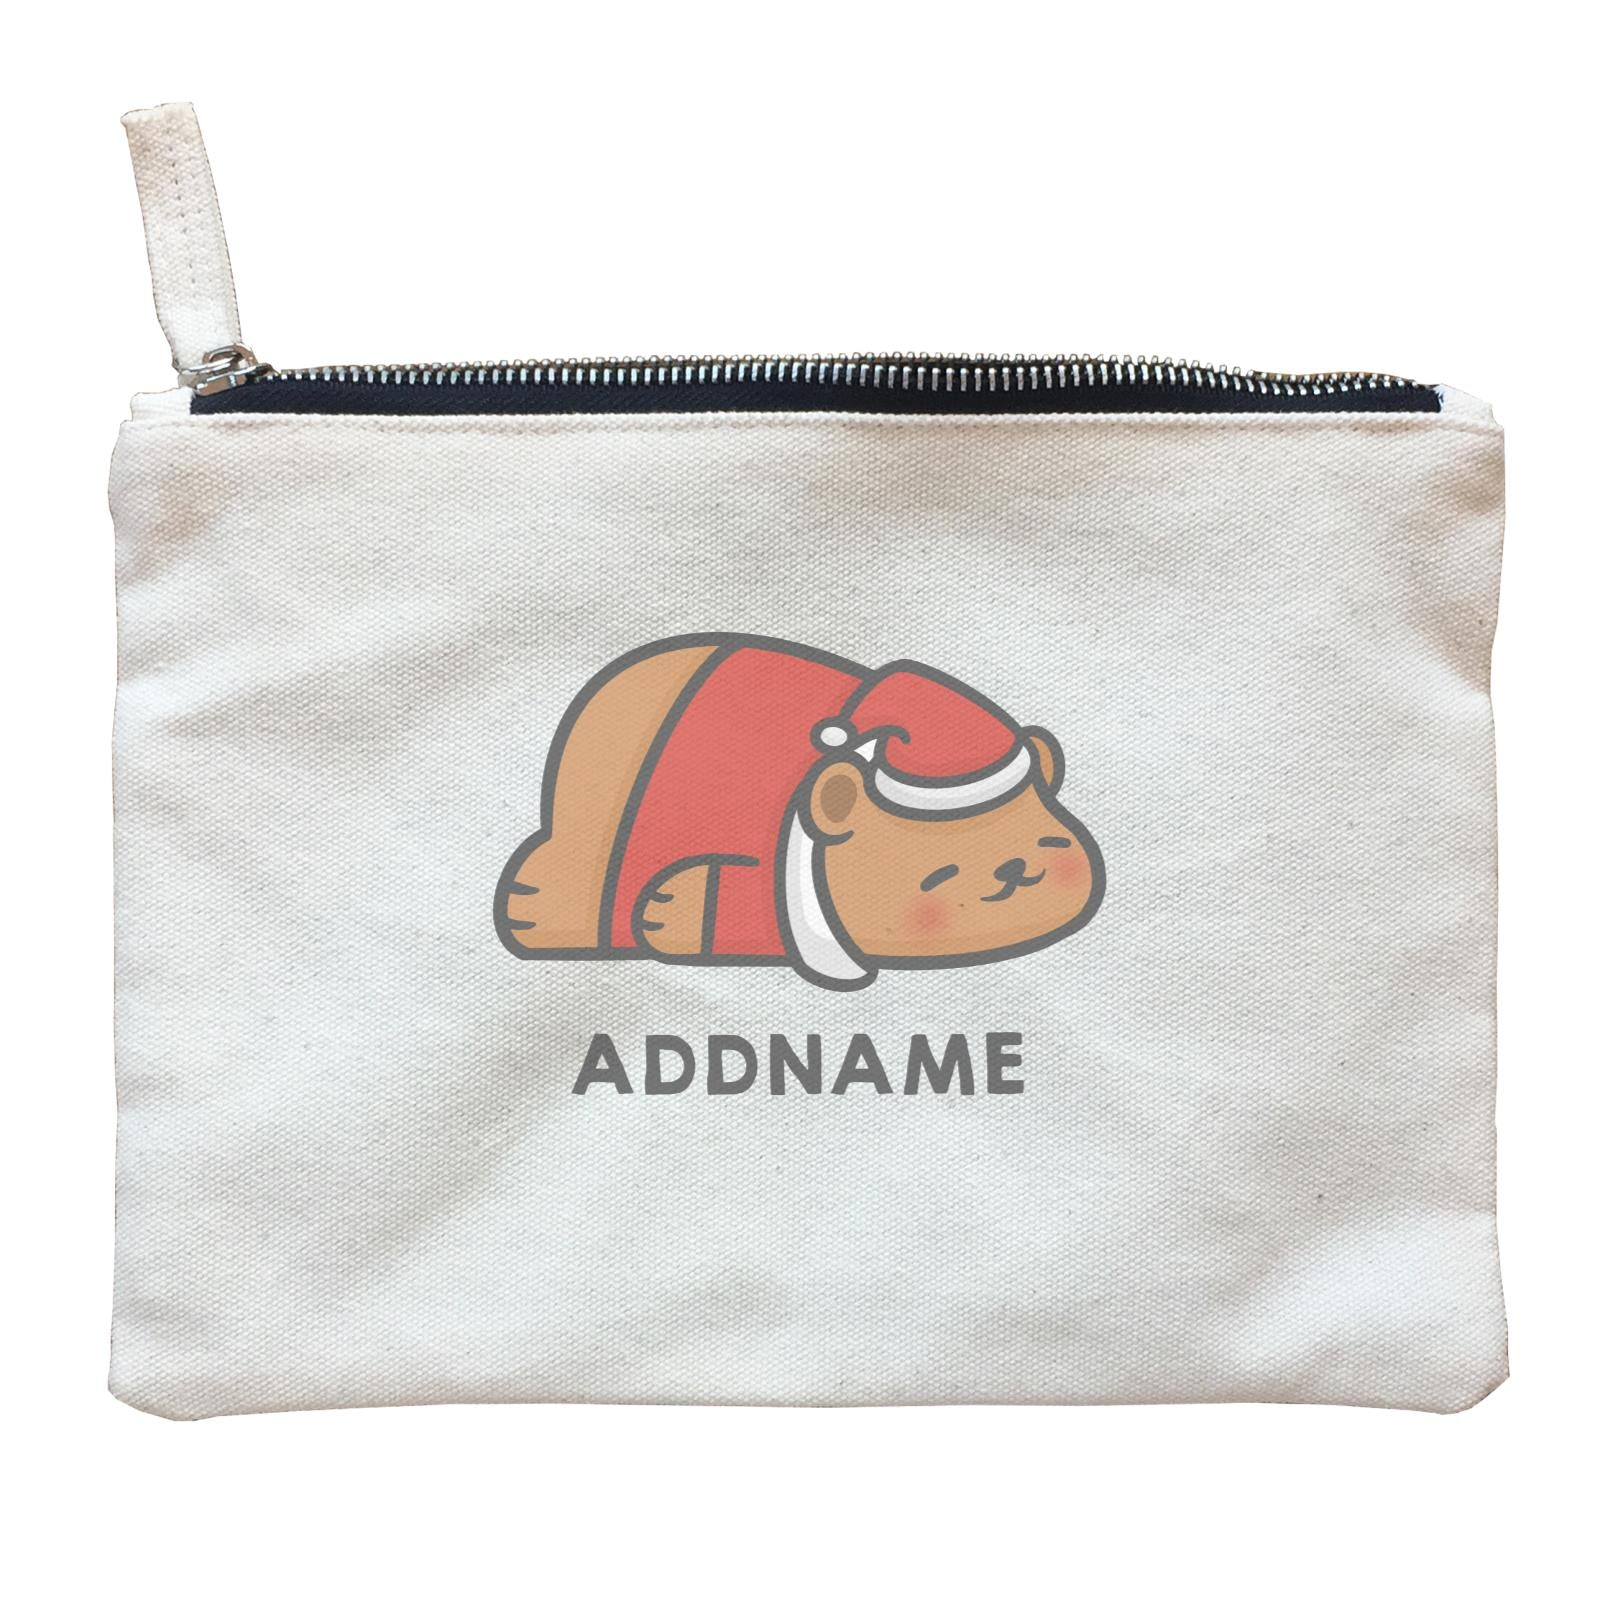 Xmas Cute Sleeping Bear Addname Accessories Zipper Pouch